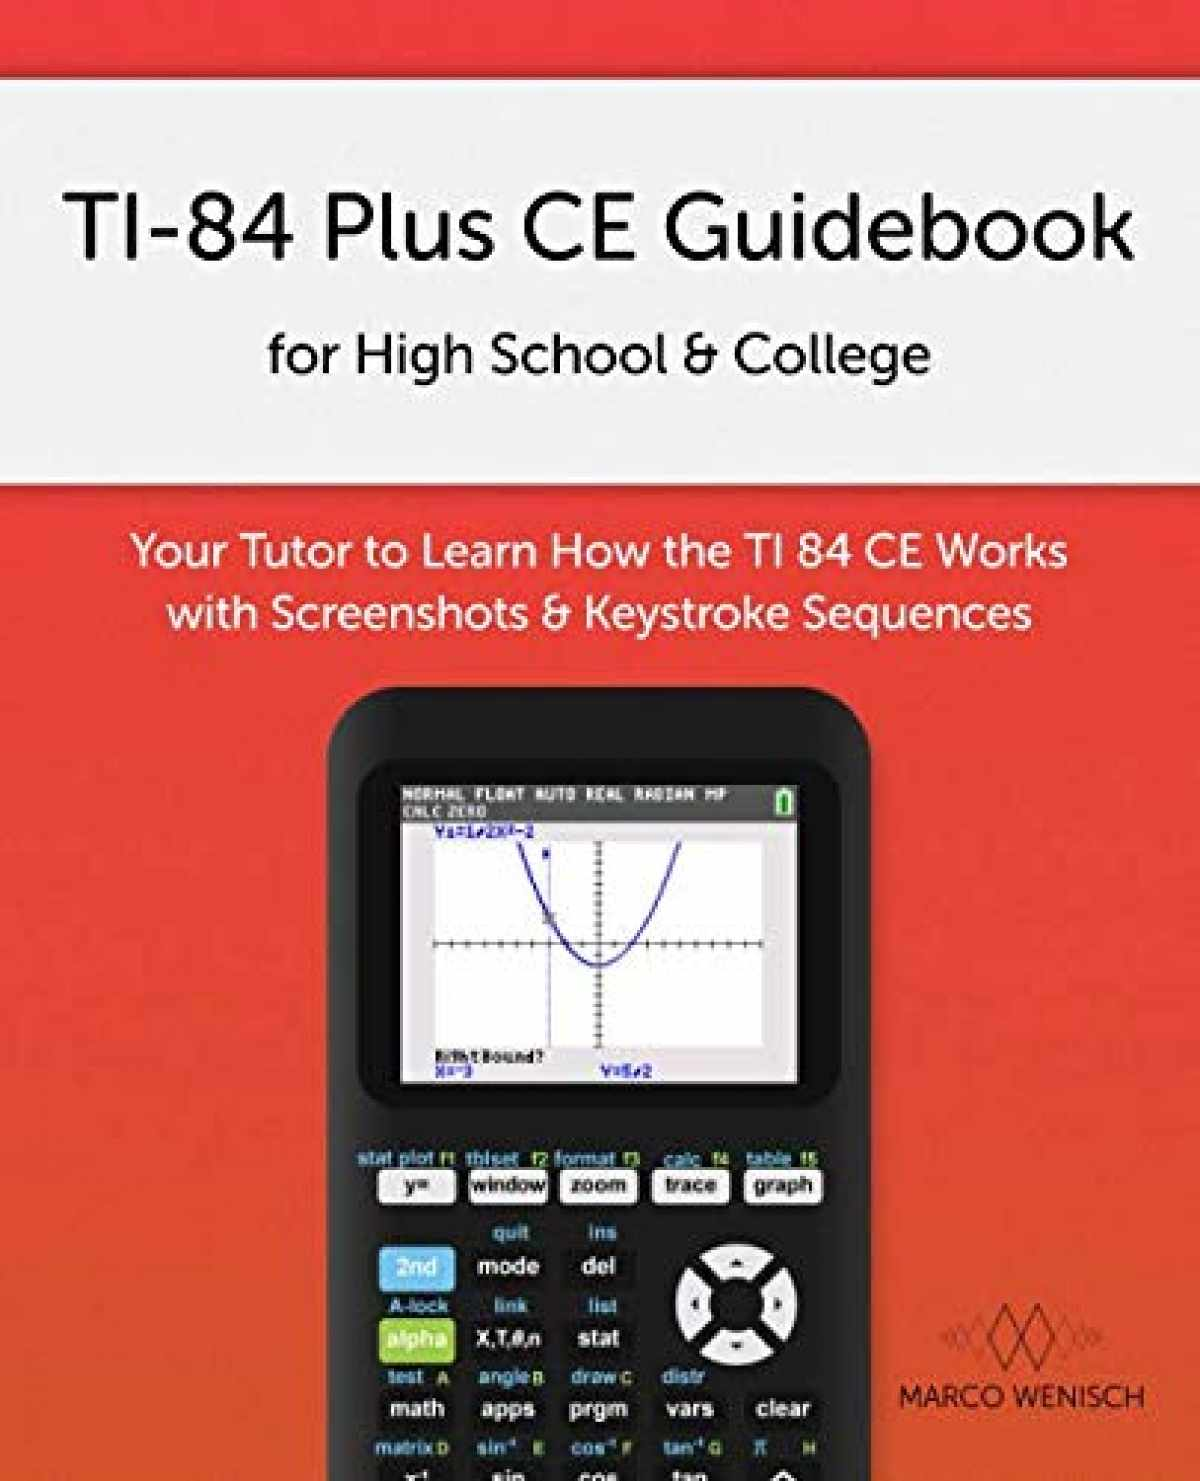 Sell, Buy or Rent TI-84 Plus CE Guidebook for High School